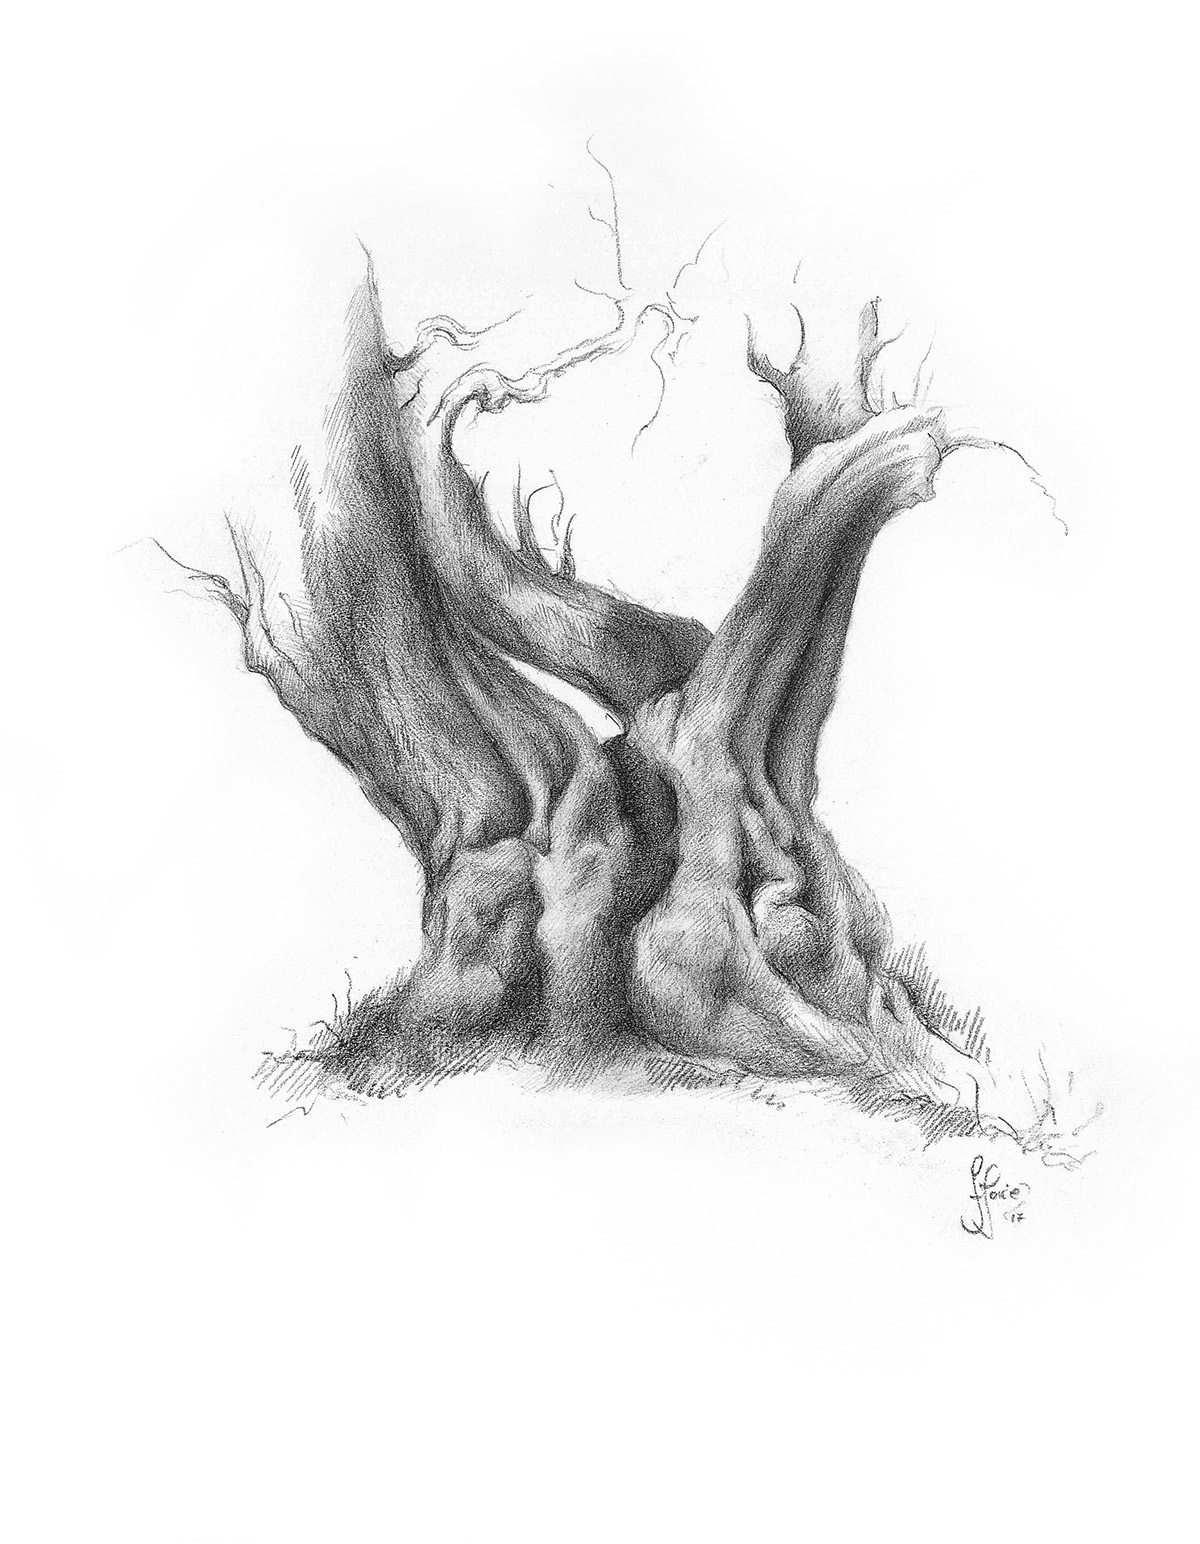 Indian bean tree (CATALPA) - Carbon pencil drawing.